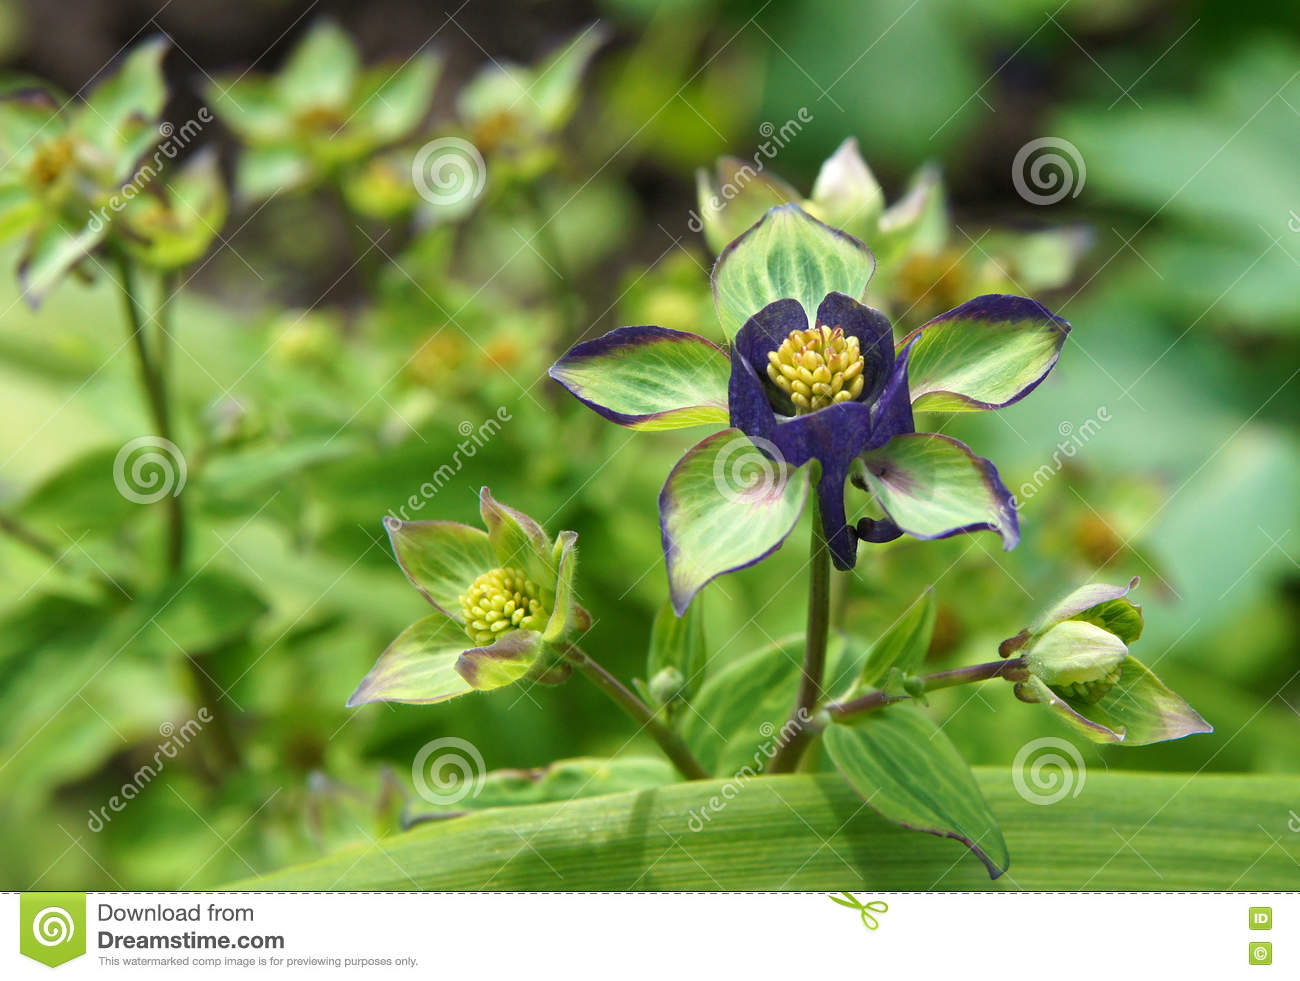 Blue columbine flowers stock photo image of pretty petal 71675008 download blue columbine flowers stock photo image of pretty petal 71675008 izmirmasajfo